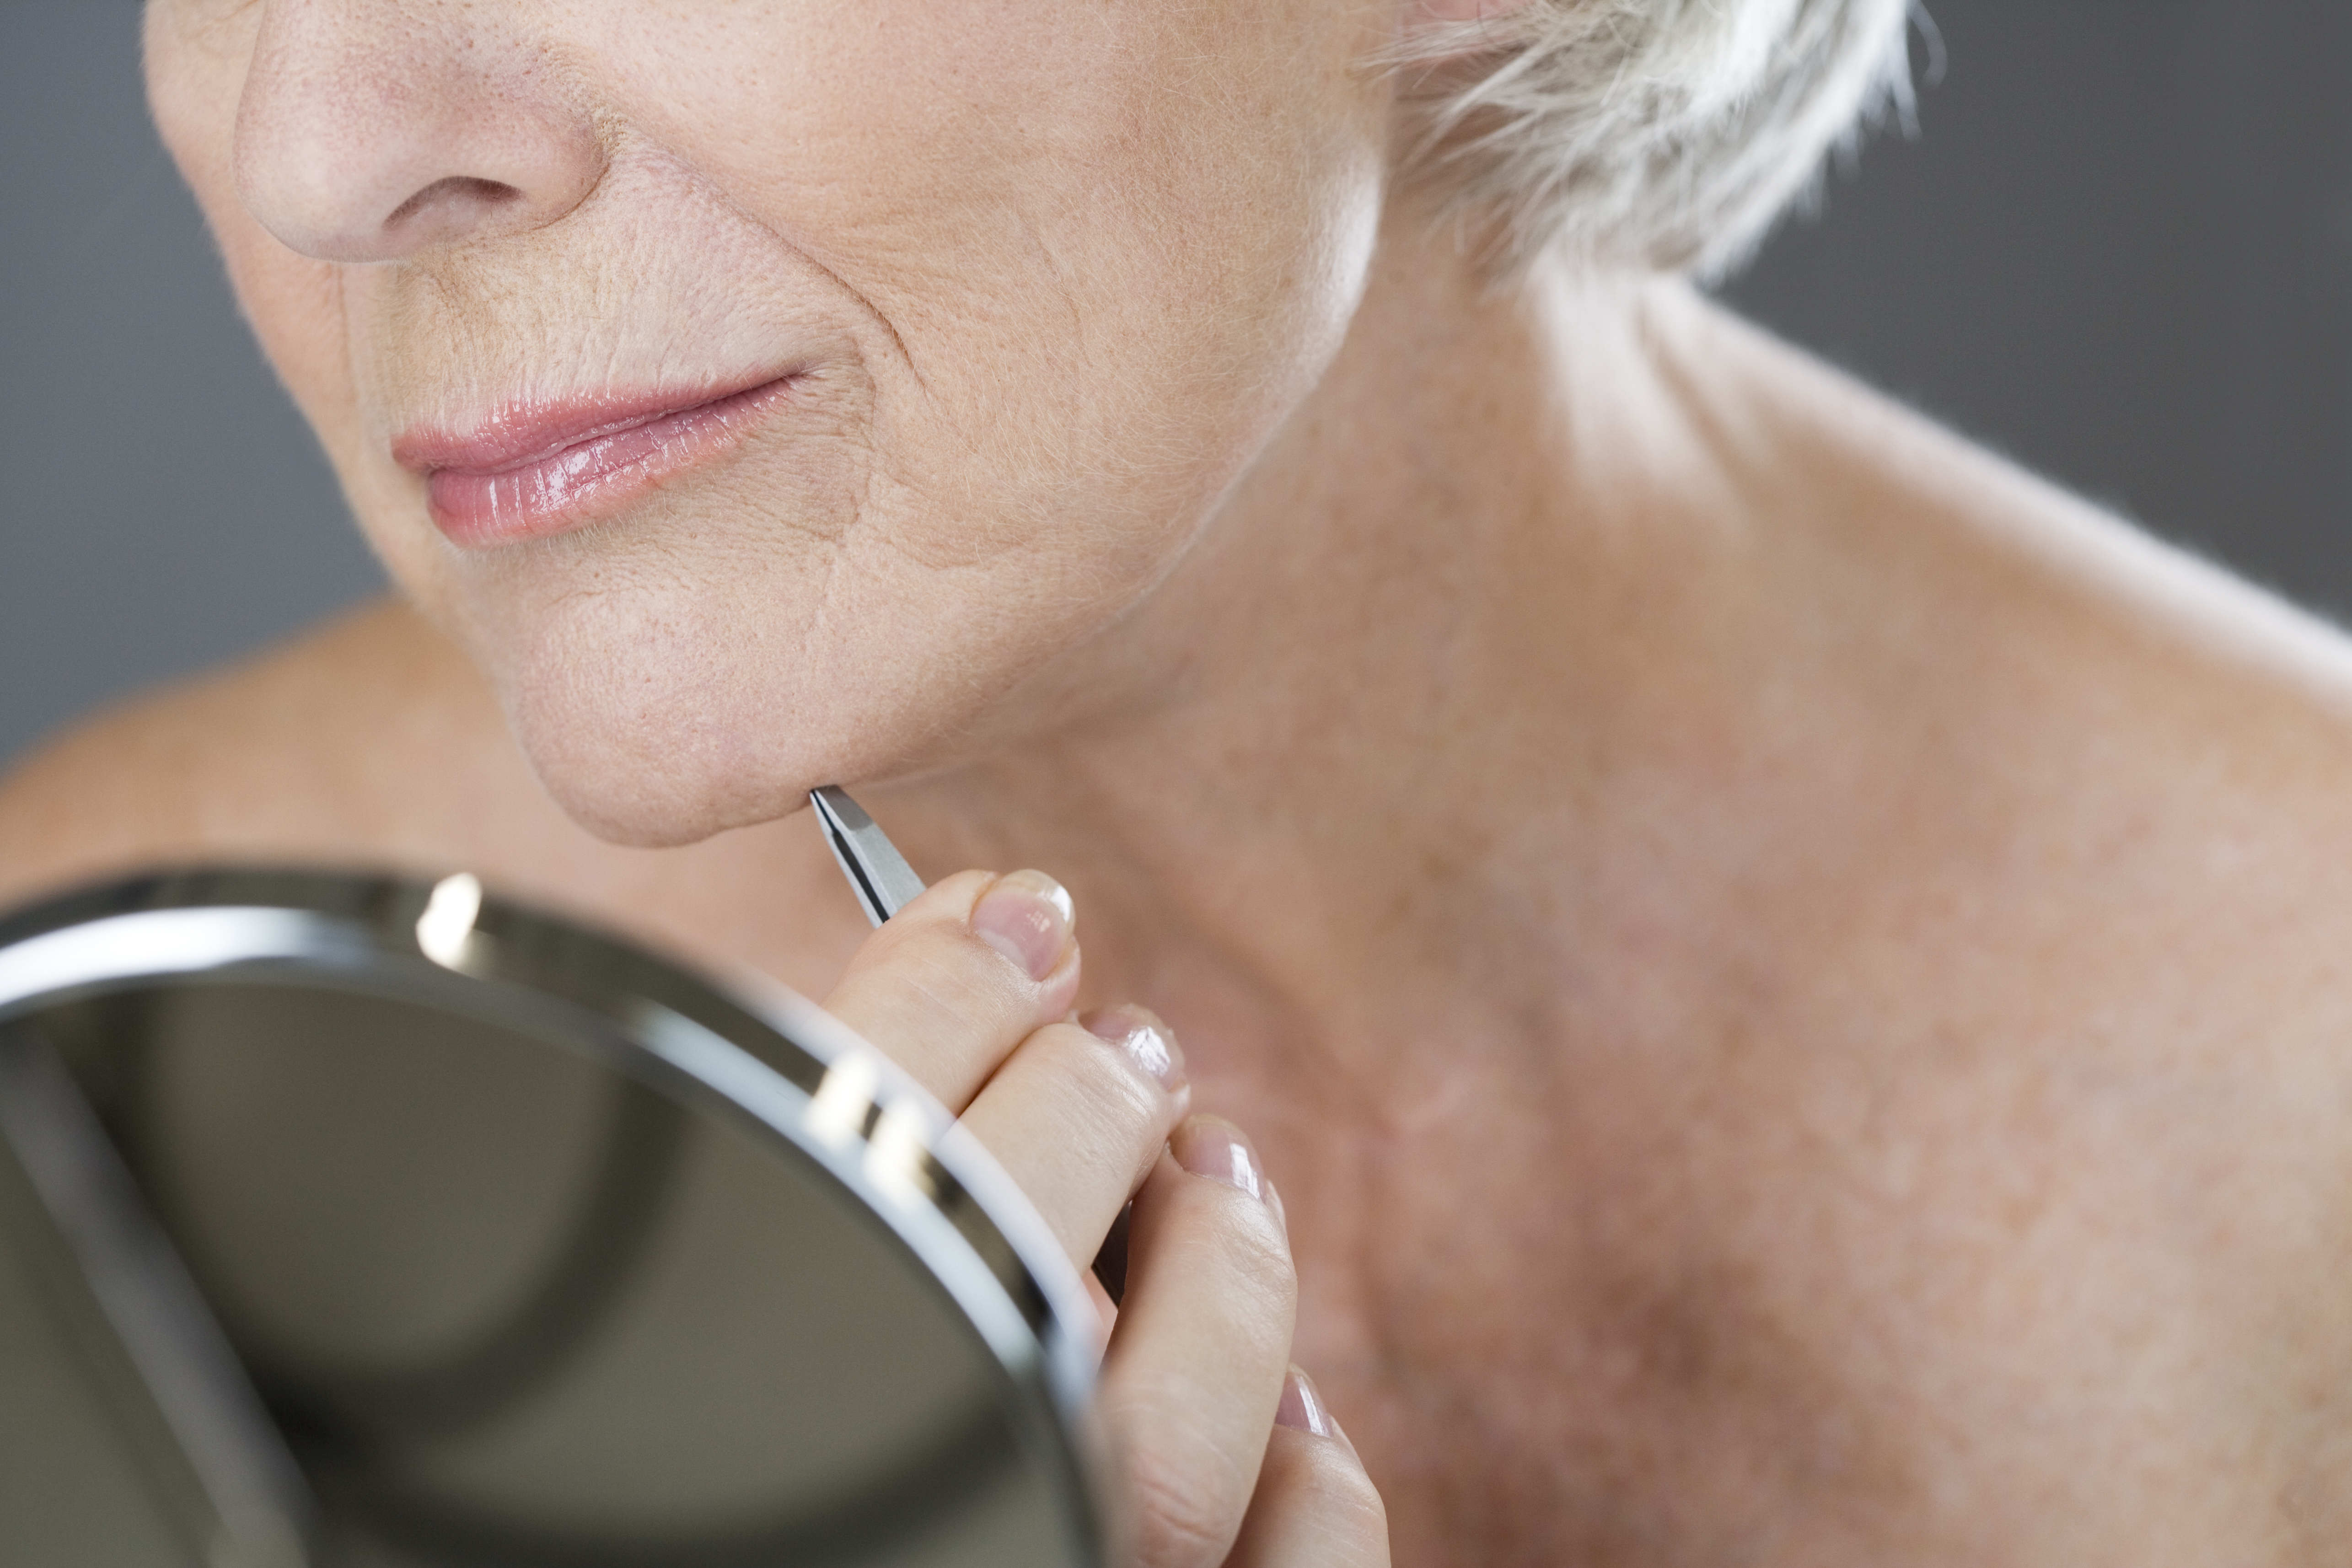 NEVER Pick Off a Melanoma, Says Dermatologist